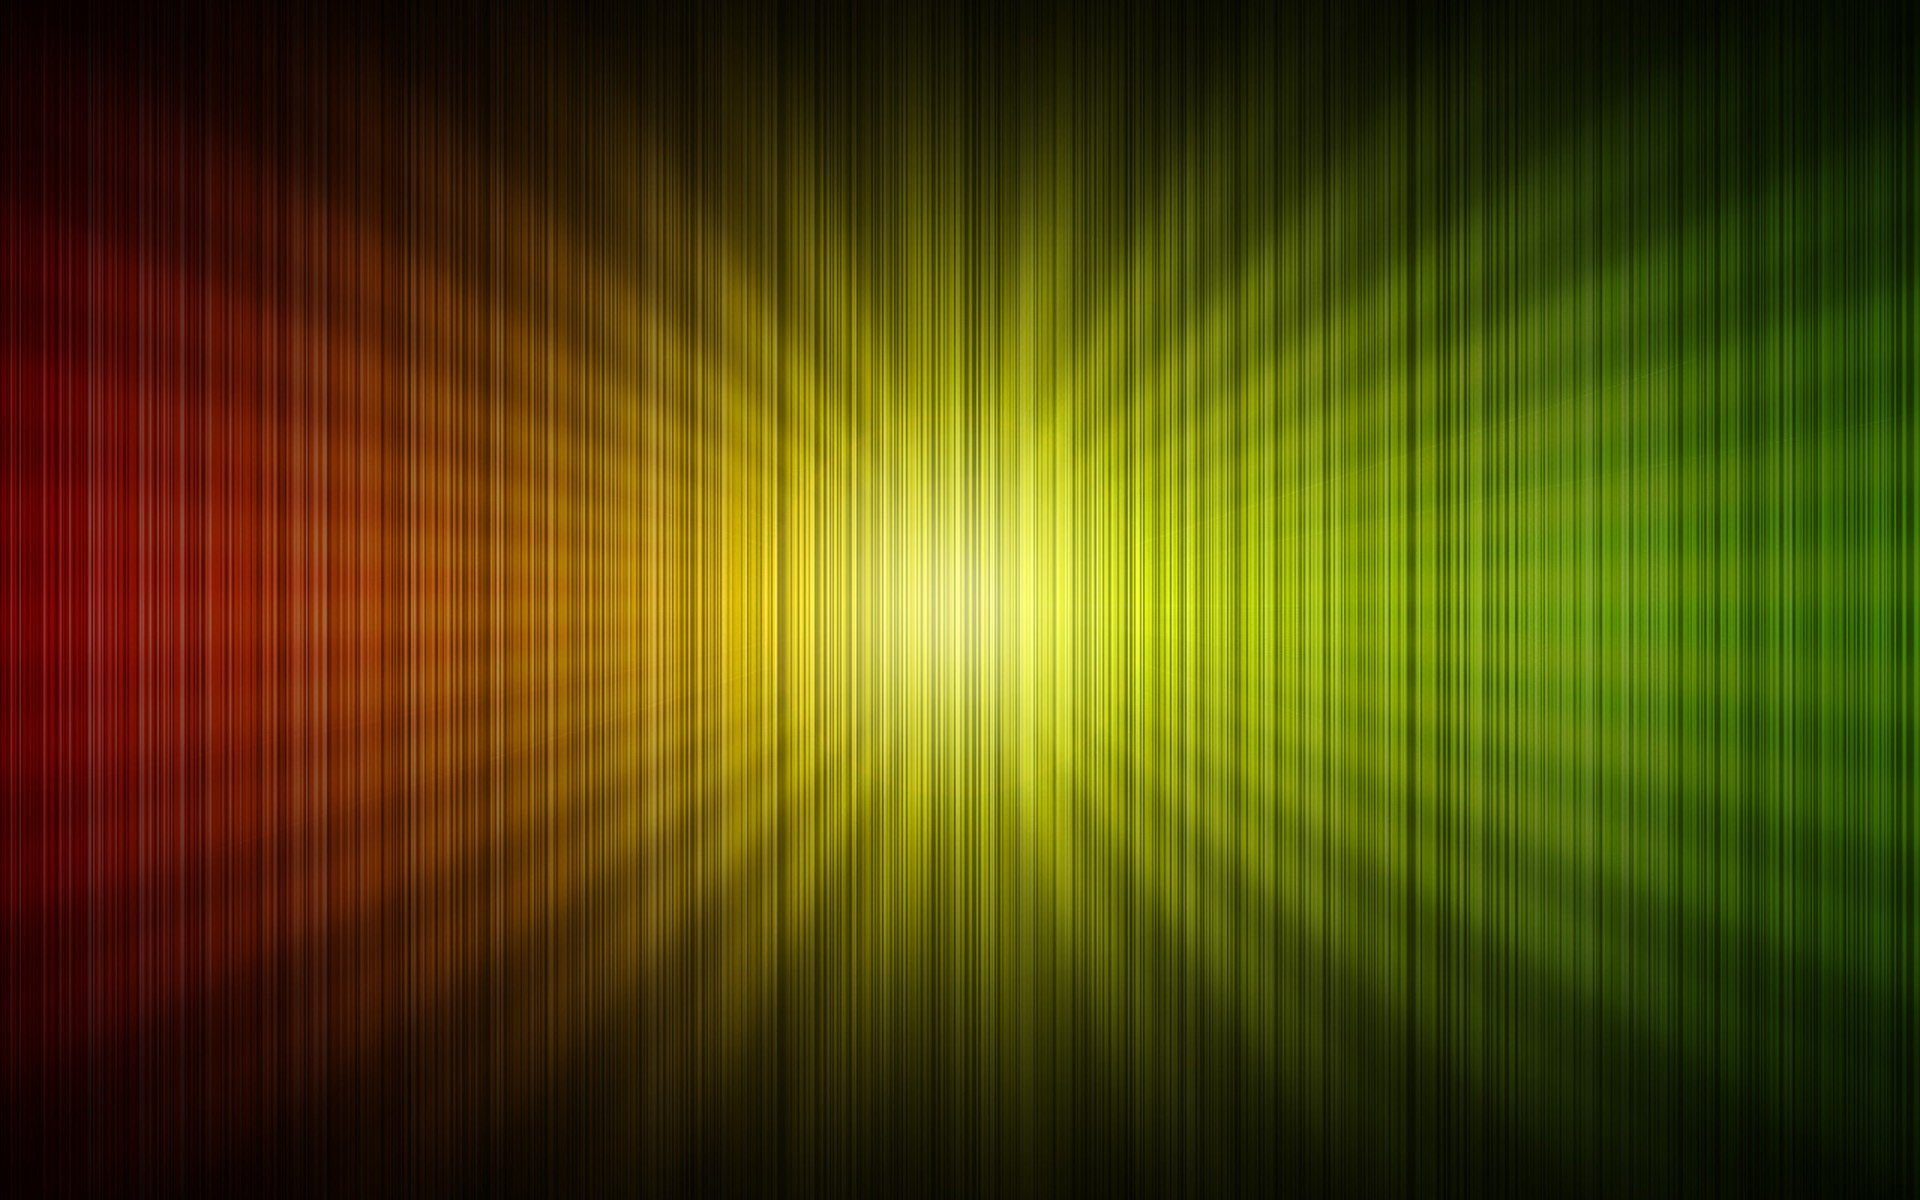 Abstract - Colors  Artistic Lines Abstract Green Wallpaper